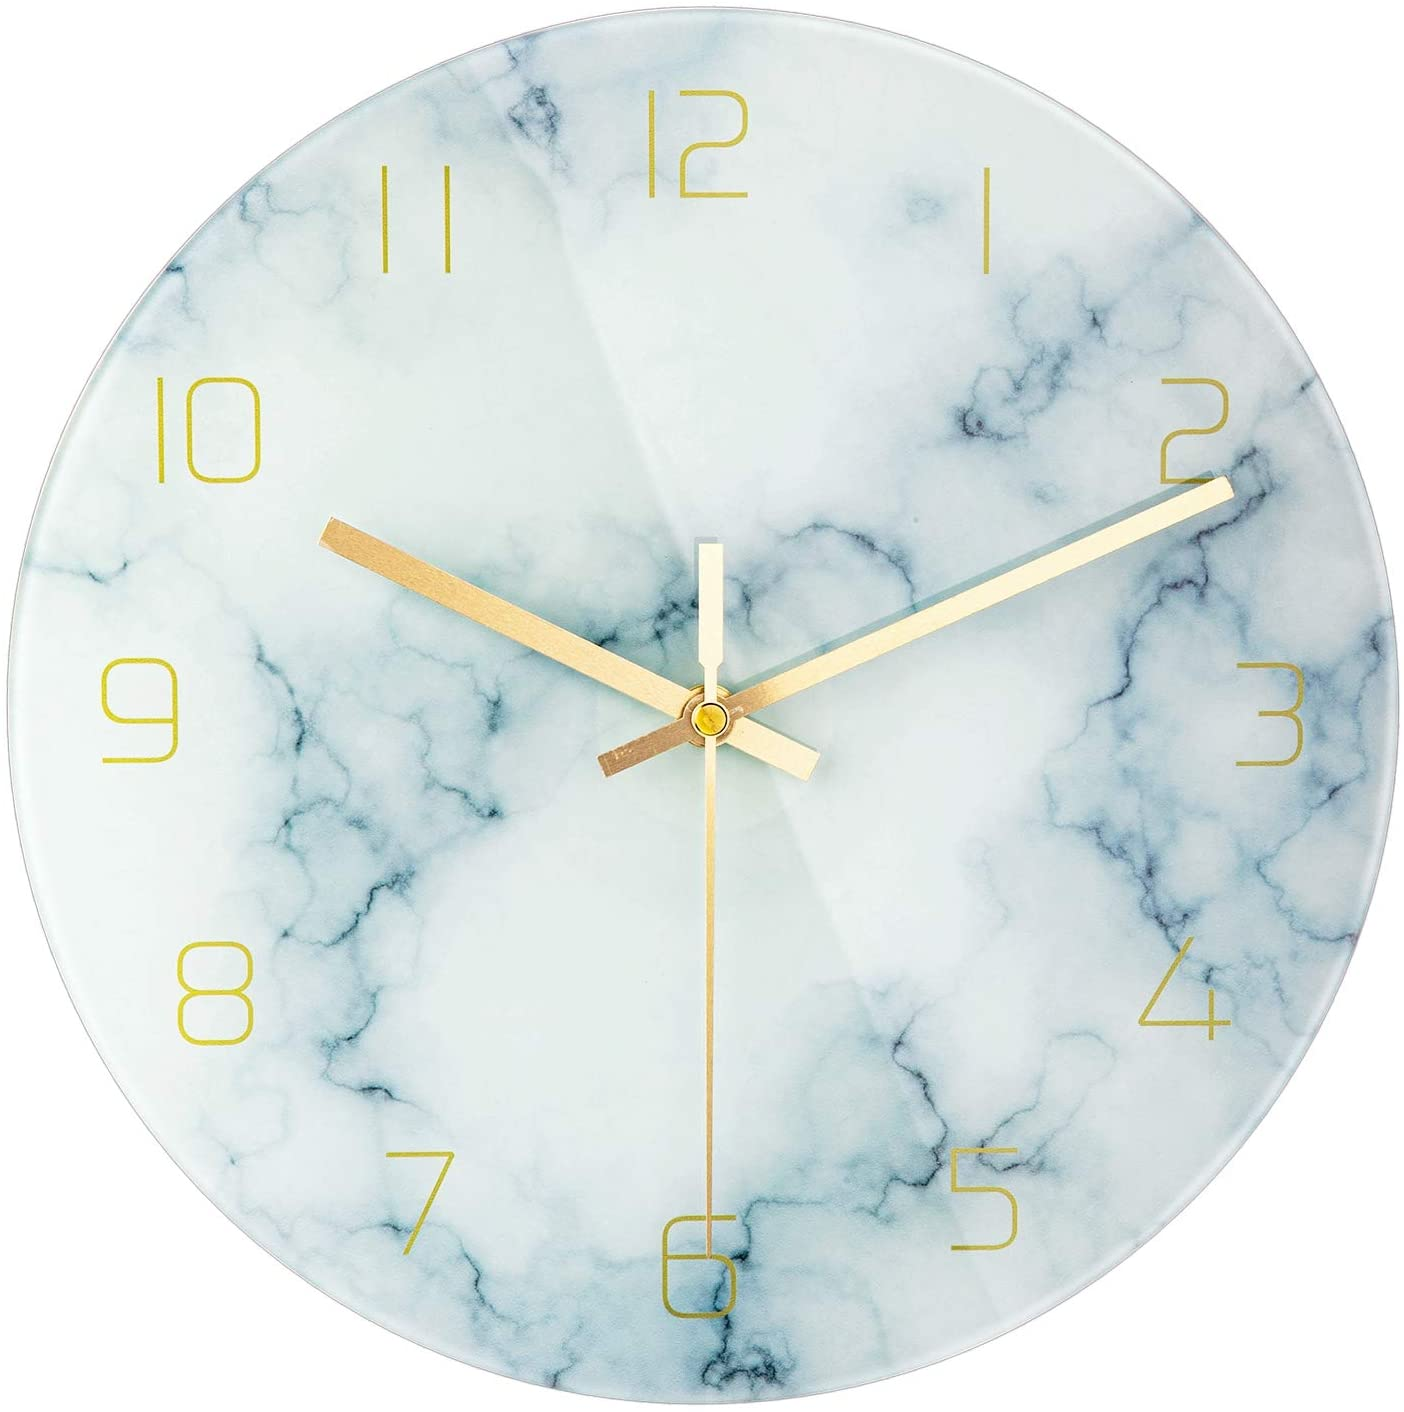 Amazon Com Patgo Glass Marbling Silent Wall Clock For Living Room Decor 12 Inch Modern Marble Non Ticking Decorations For Aesthetic Bedroom And Office Battery Operated Kitchen Dining